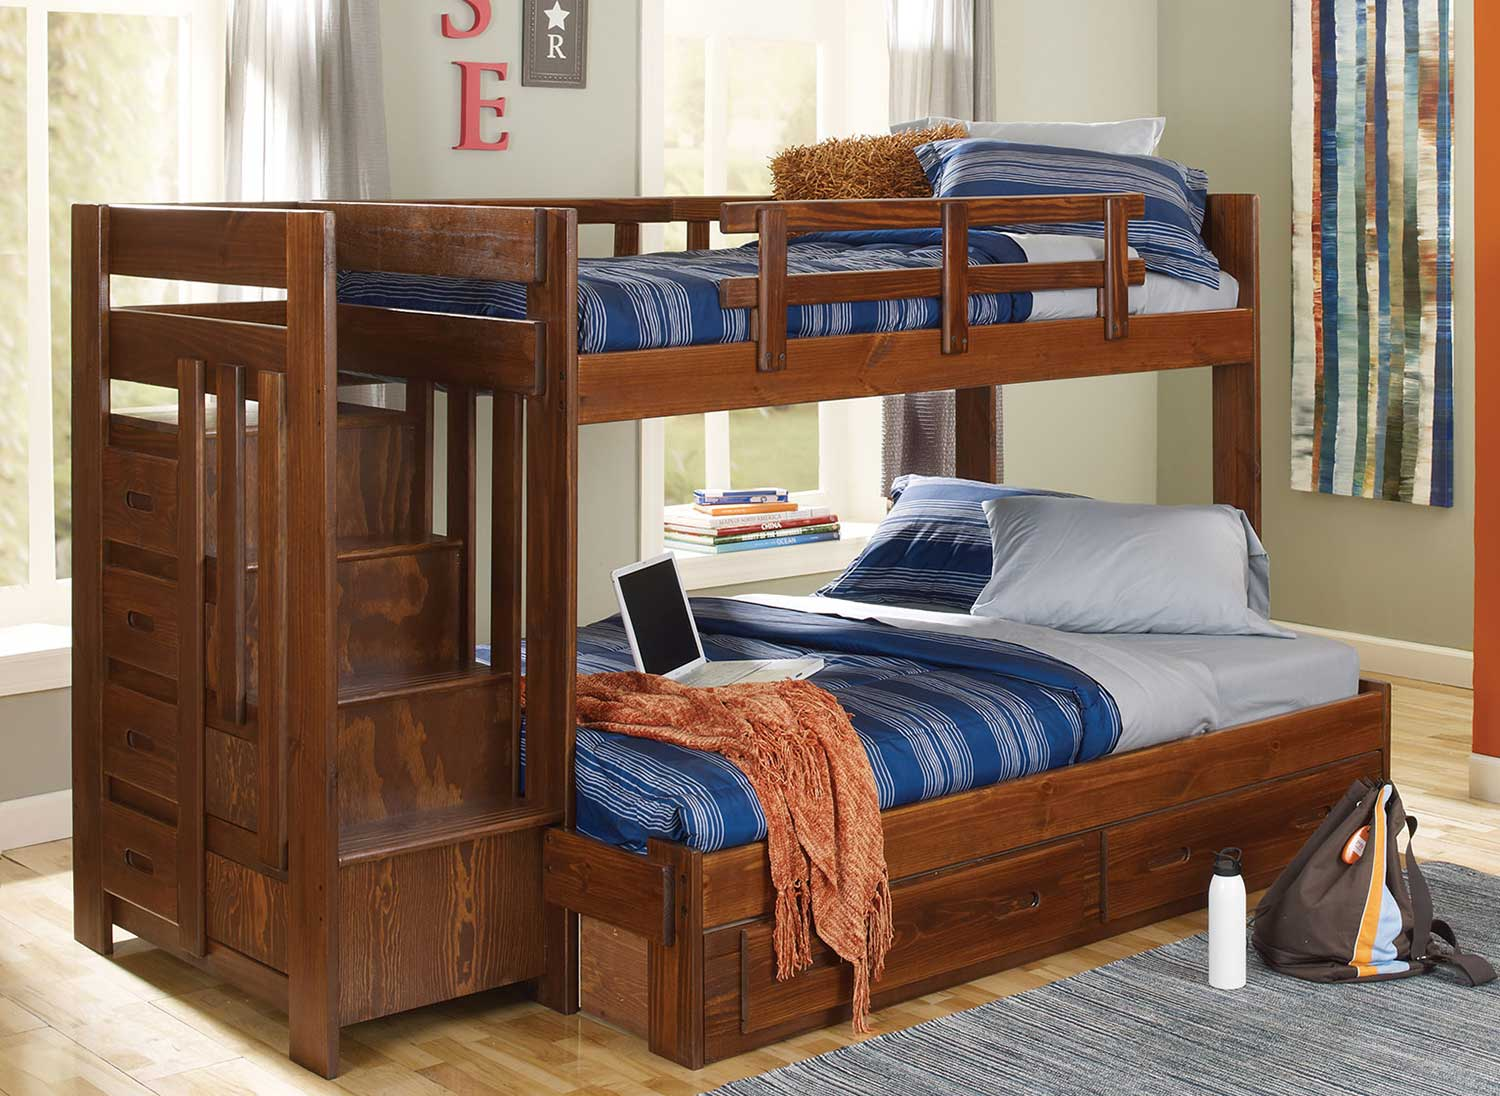 Chelsea Home Twin Over Full Reversible Bed with Stairway - Chocolate